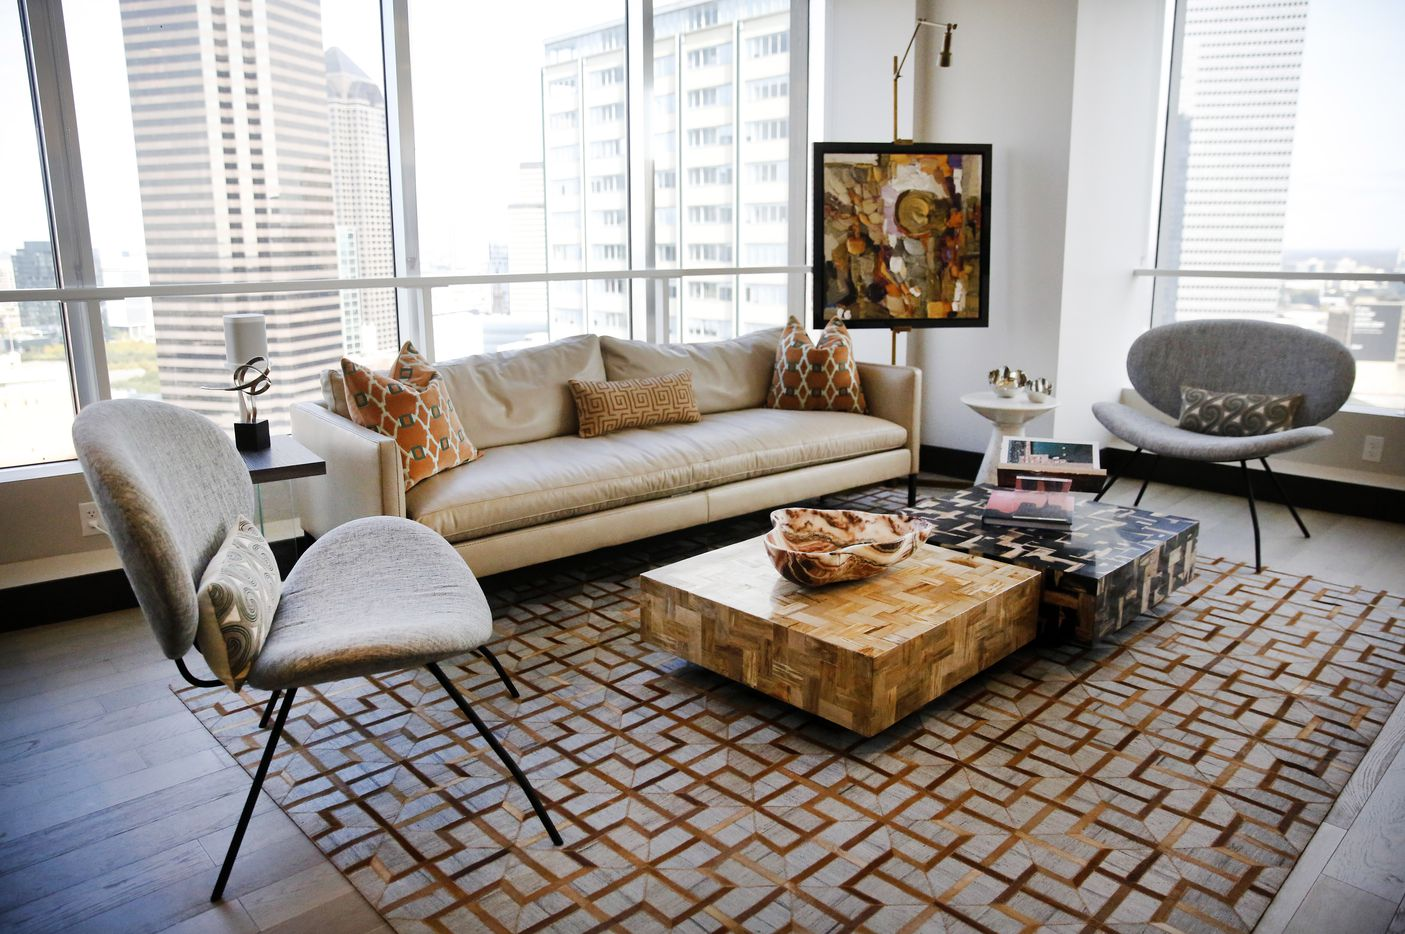 The living area of a two-bedroom, two-bath apartment in The National.